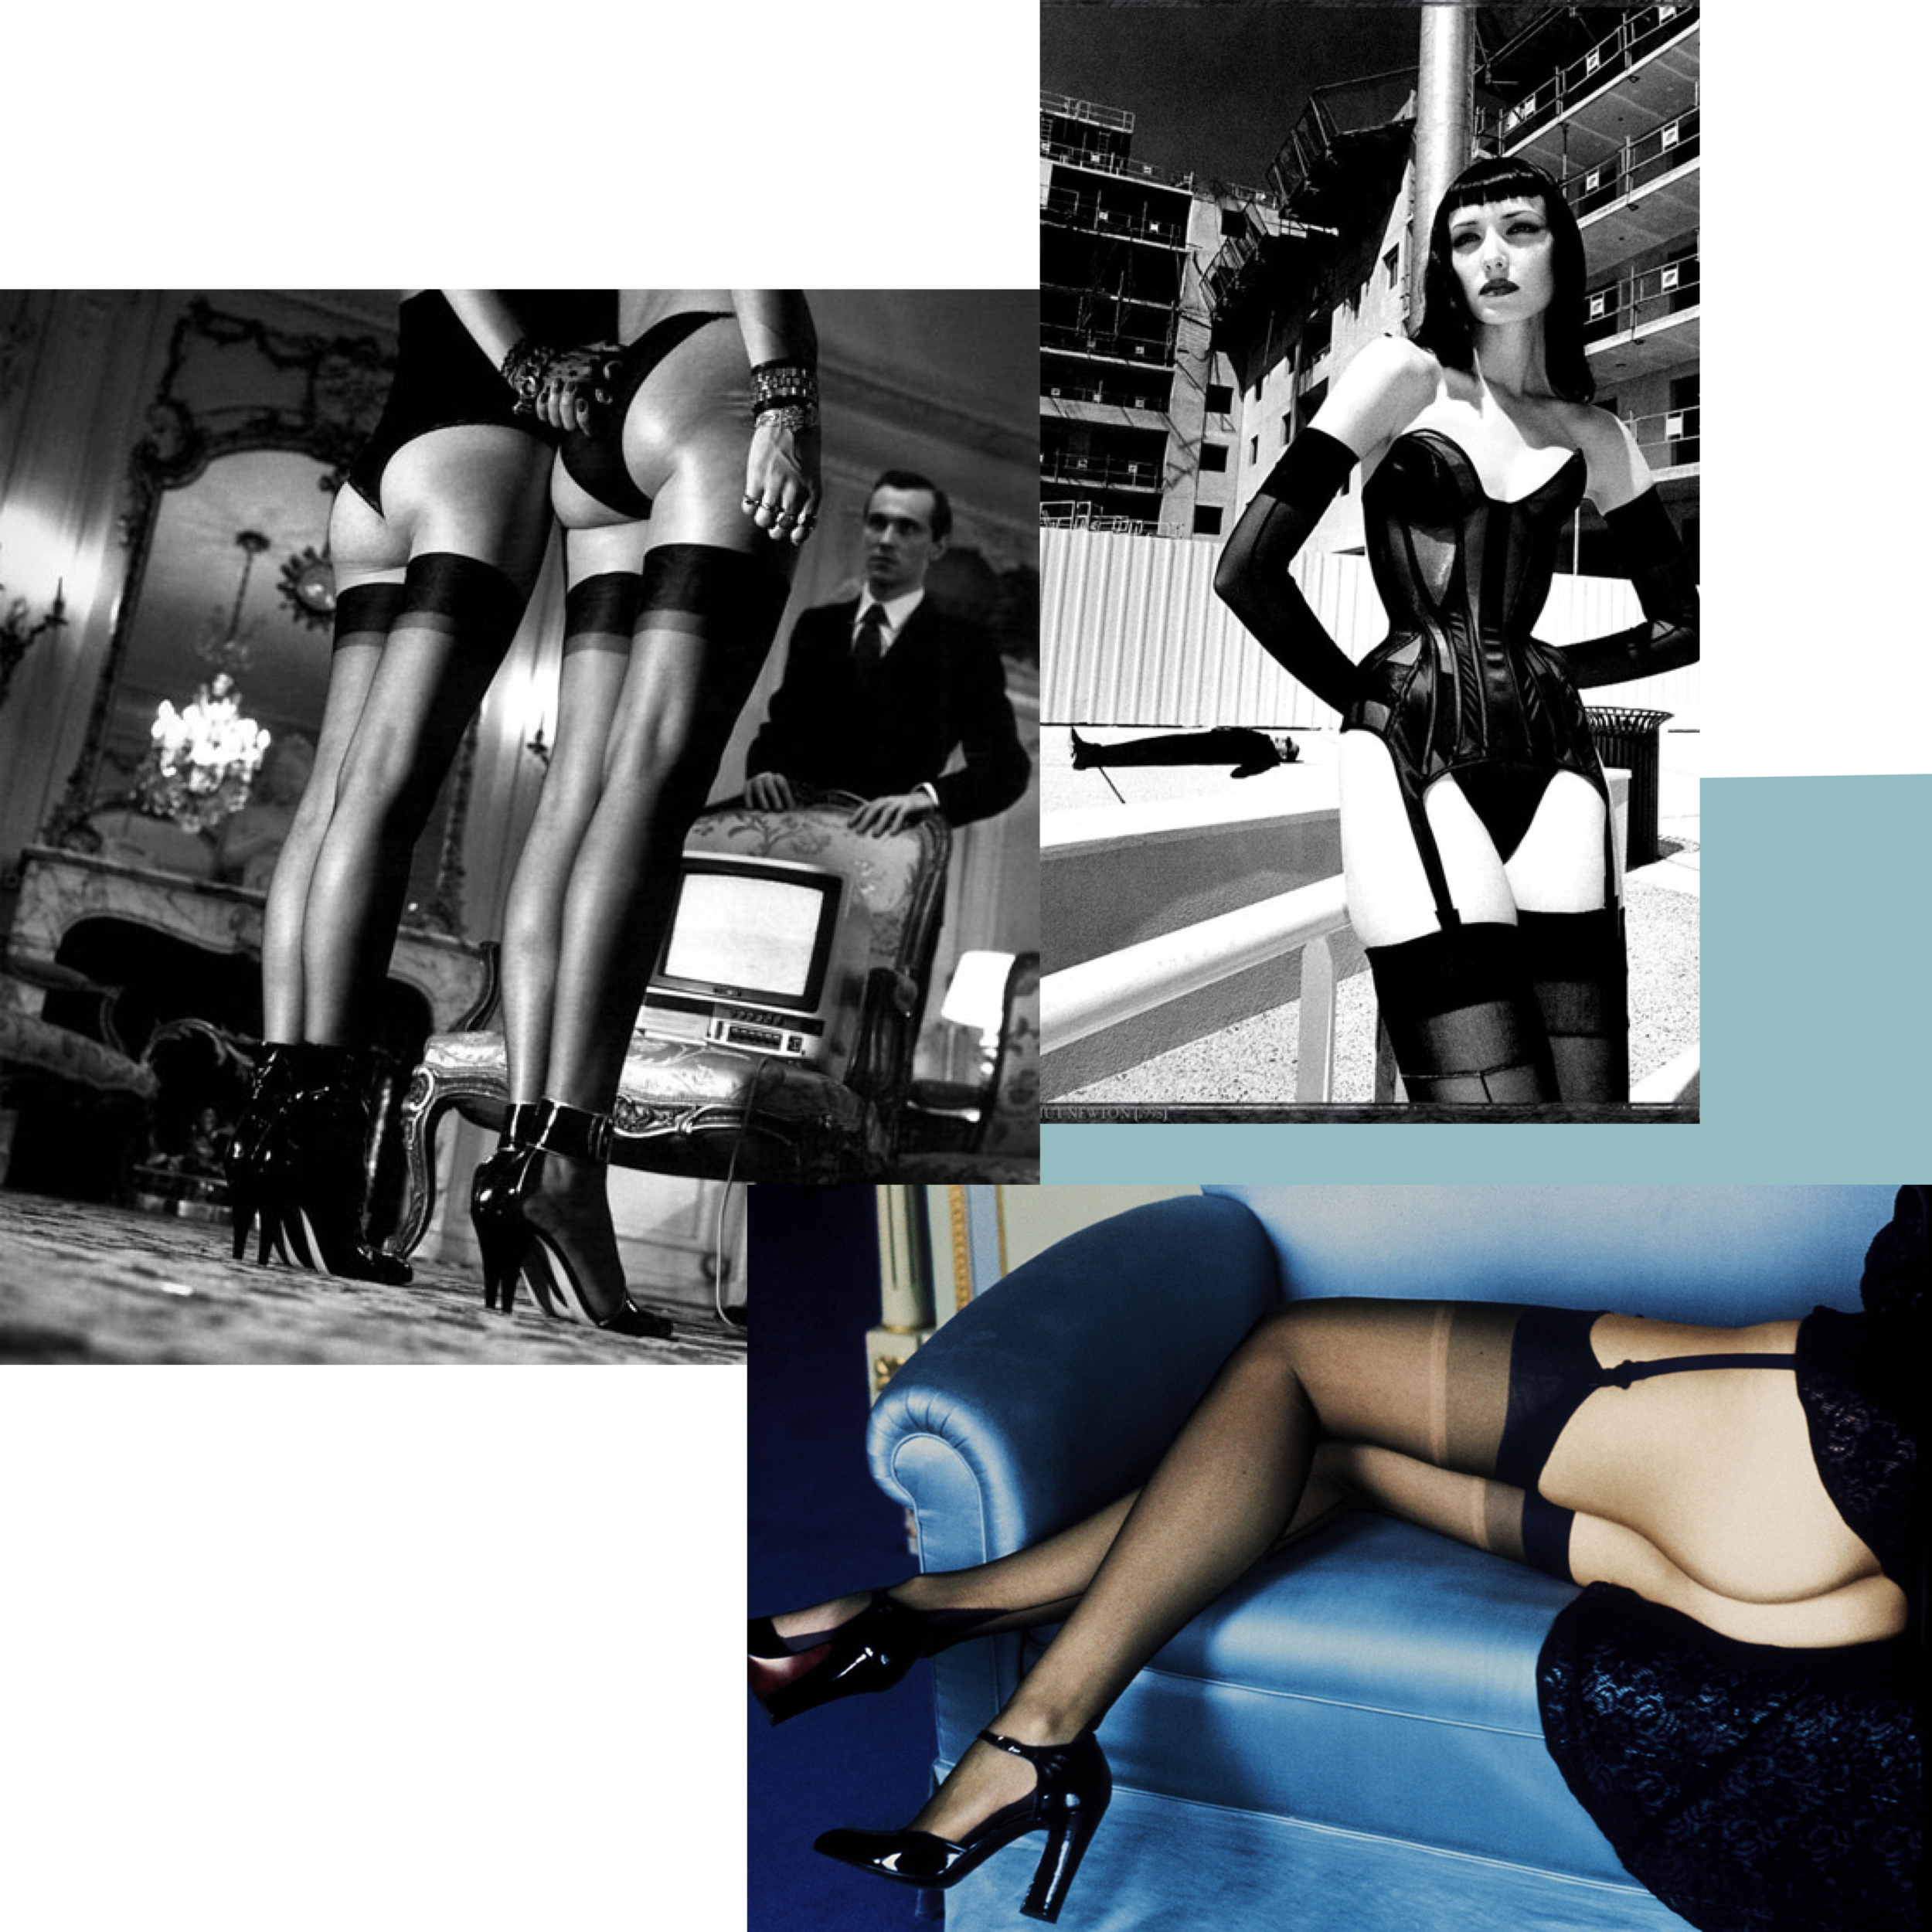 helmut-newton-fashion-lingerie-photographer-editorial-underwear-underpinnings-style-sensual-seductive-photo-shoot-08